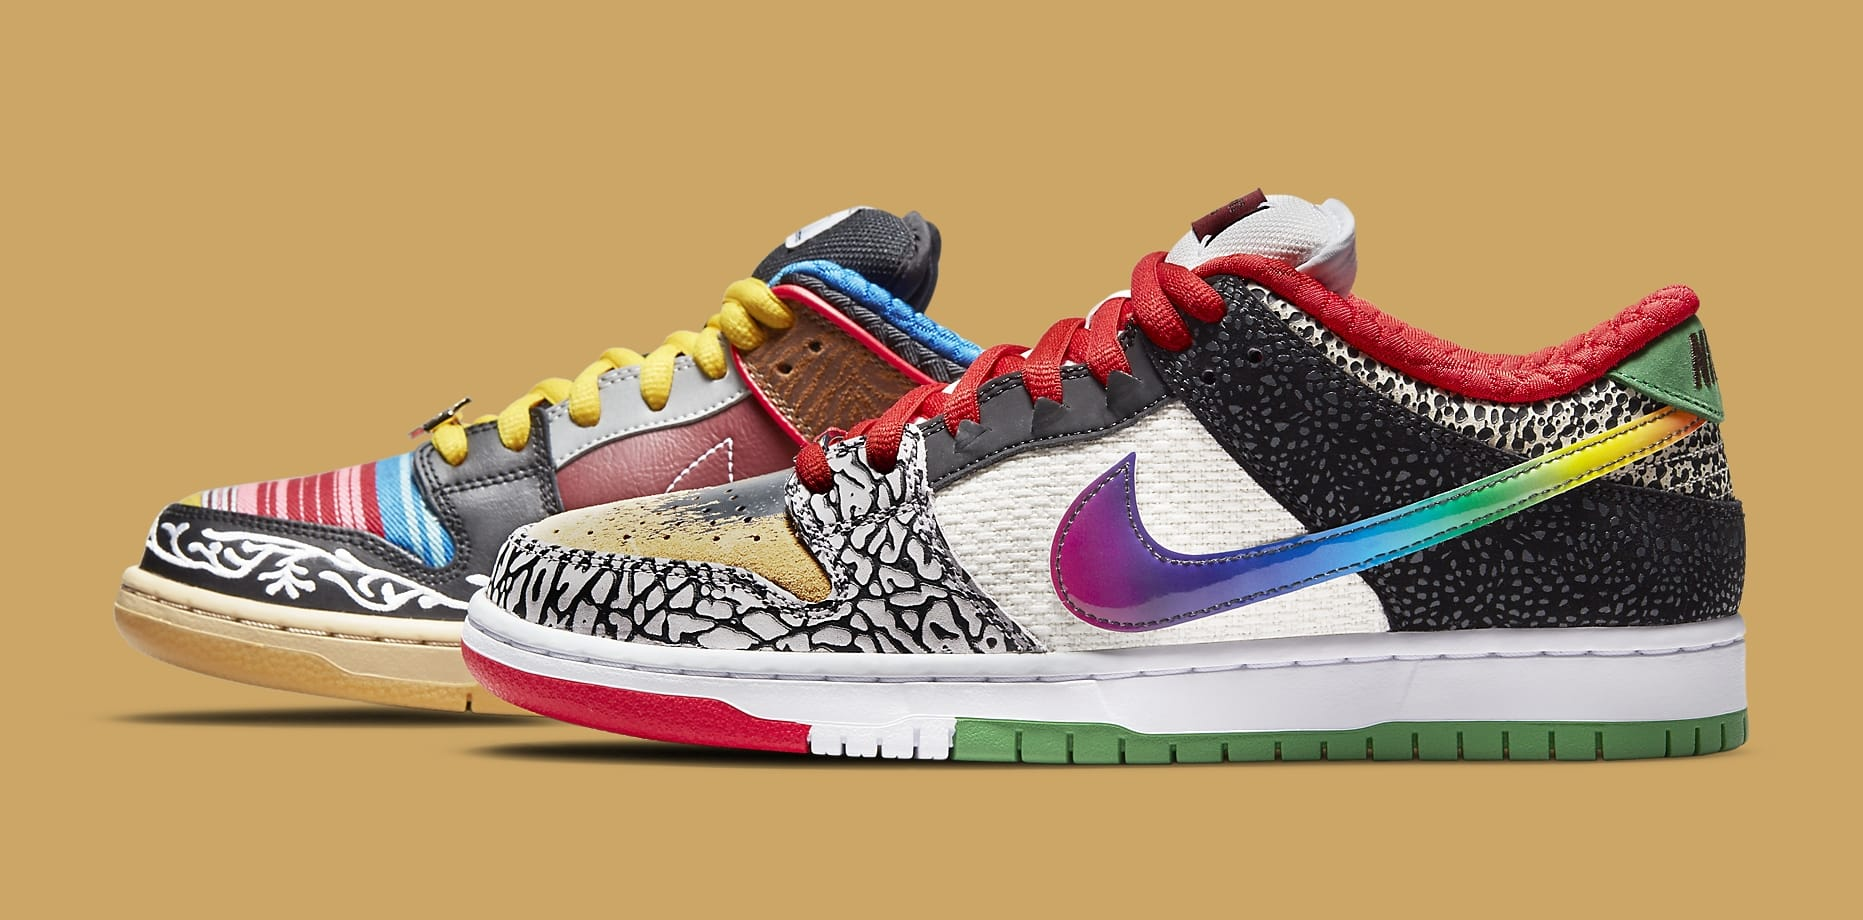 DUNK LOW SB 'WHAT THE DUNK'